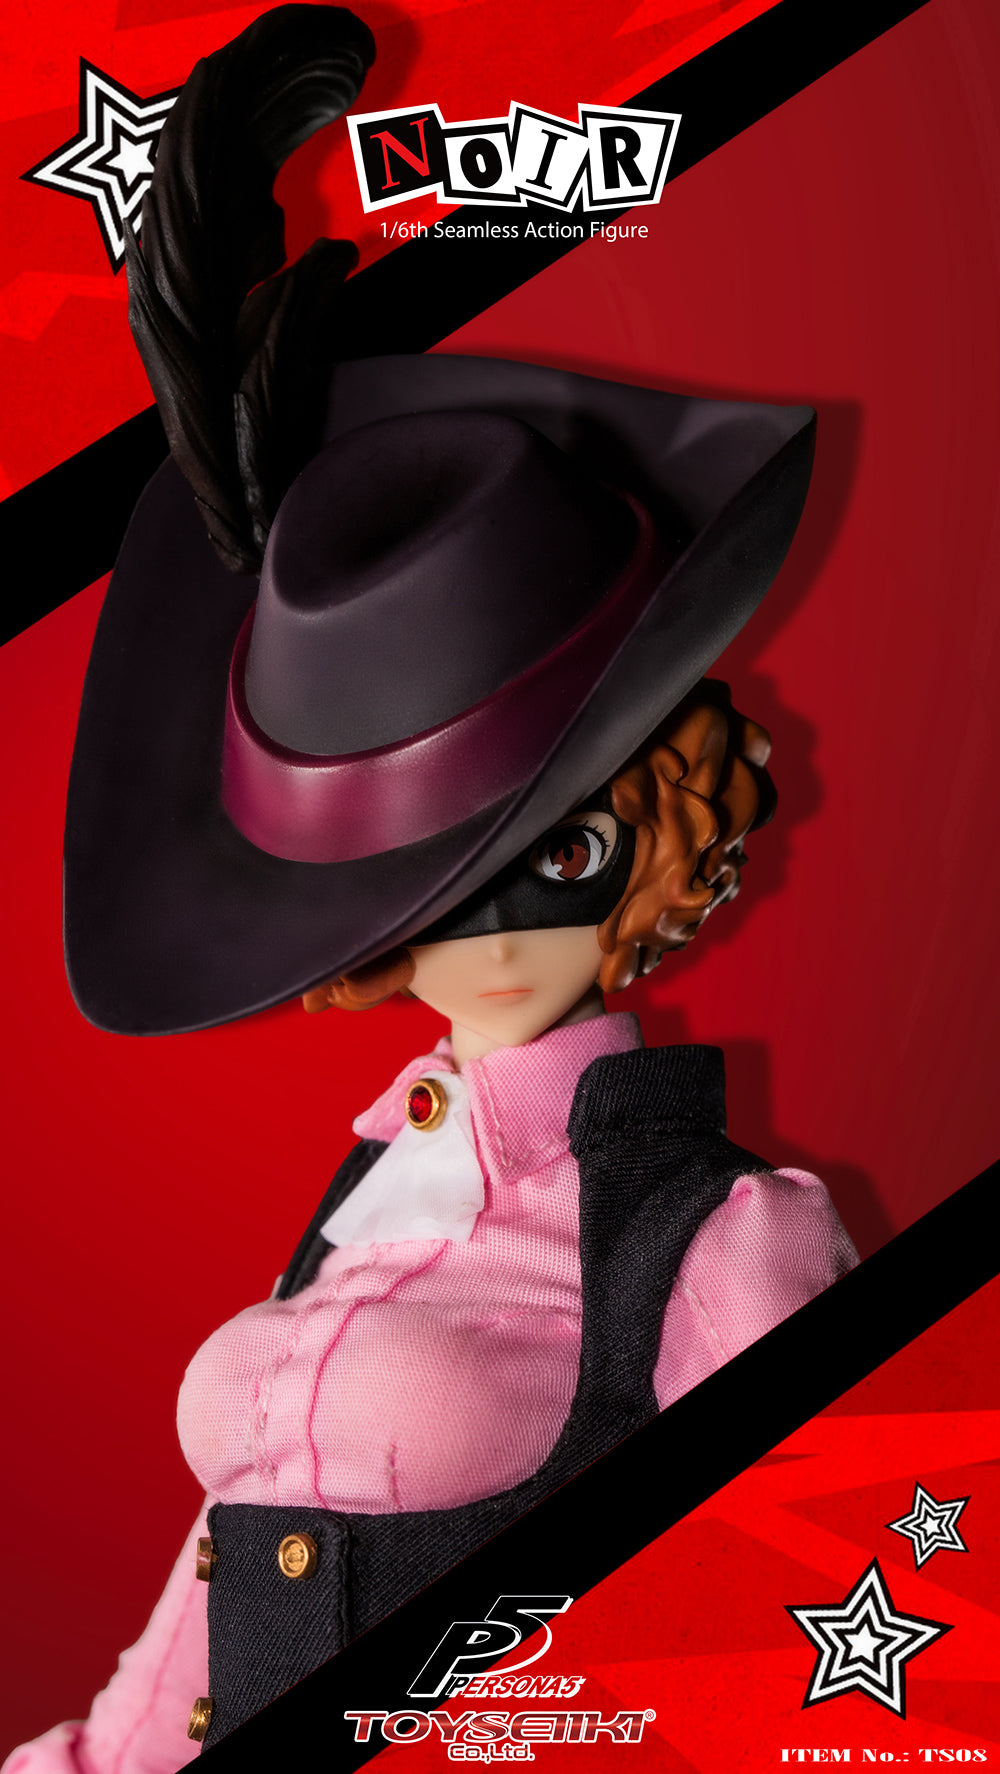 Phicen TBLeague Persona 5 Noir 1/6 Action Figure